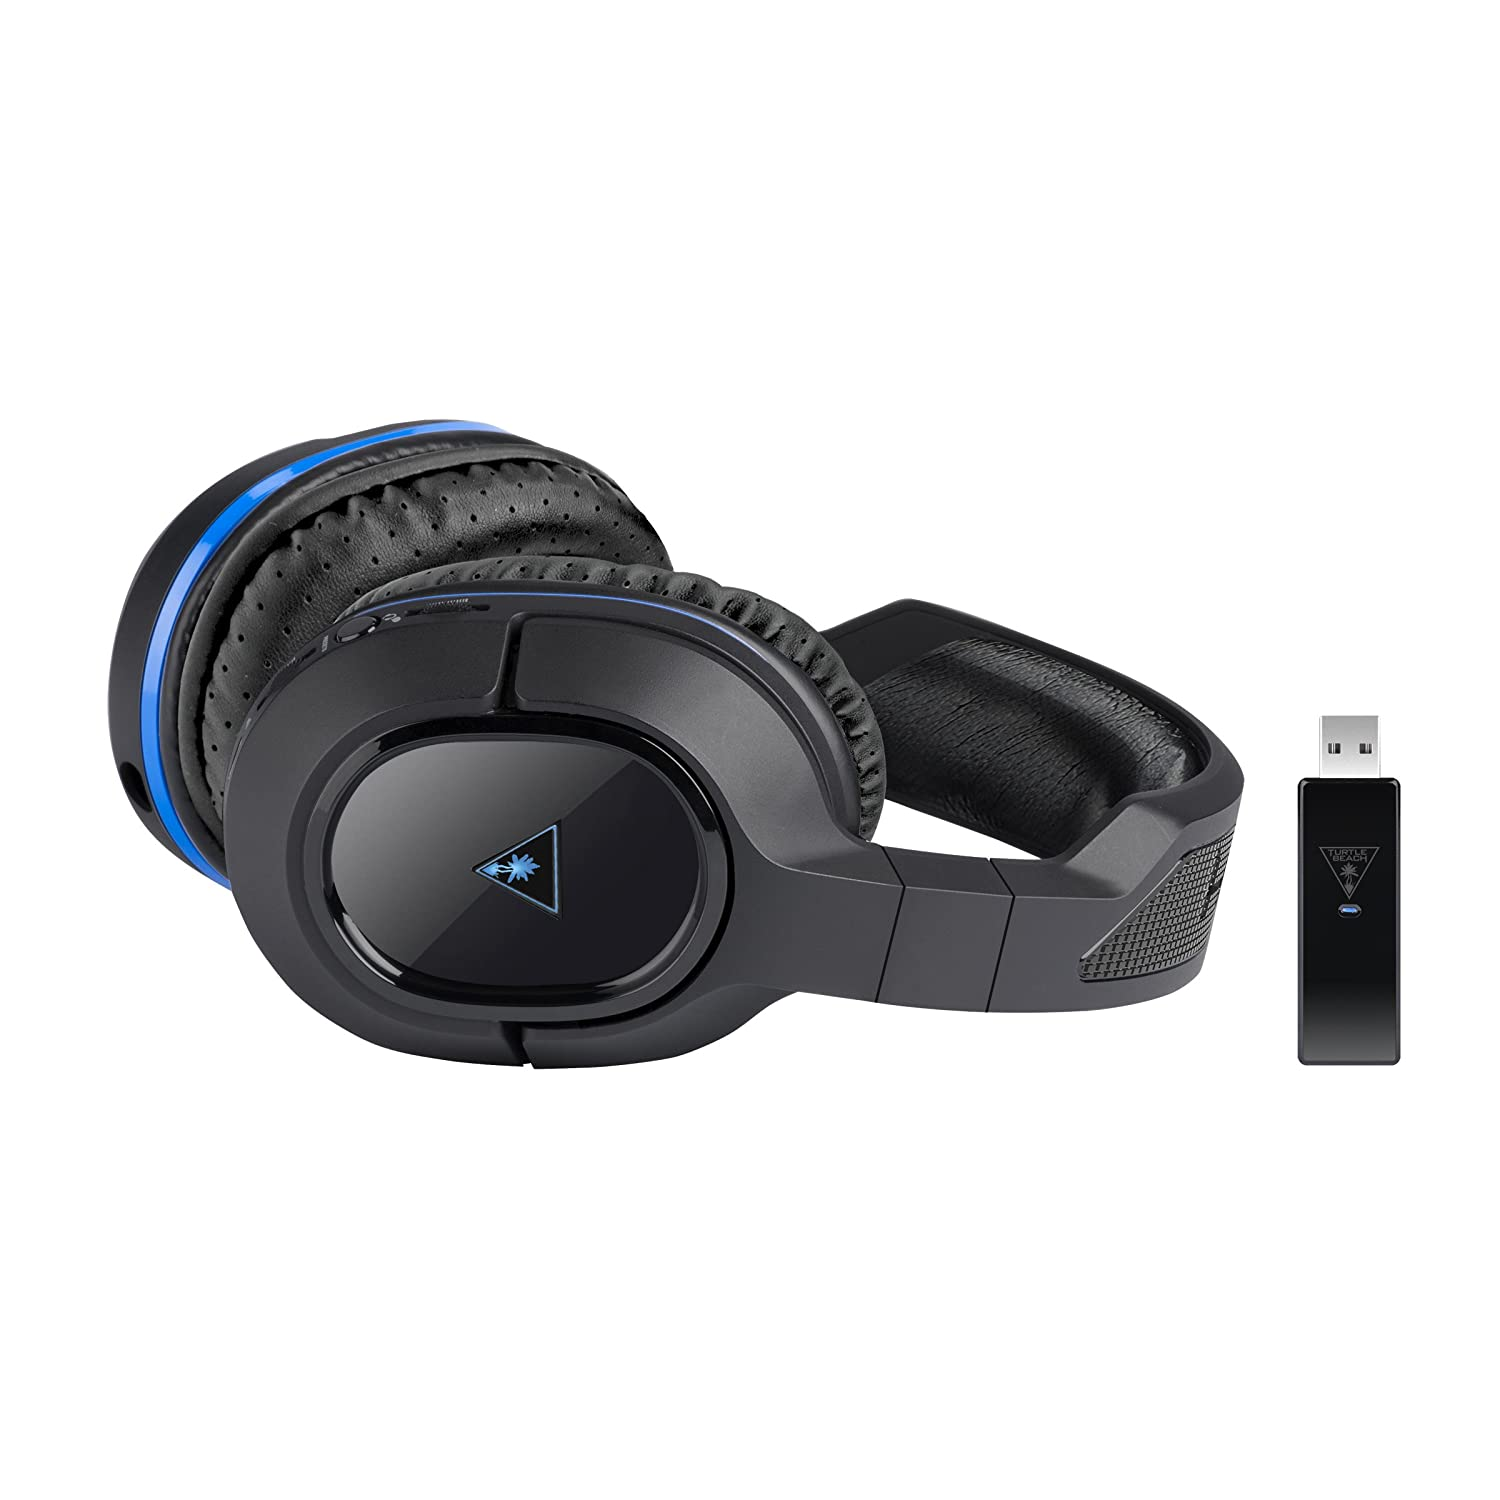 First DTS Headphone:X 7 1 surround sound PS4 gaming headset gets